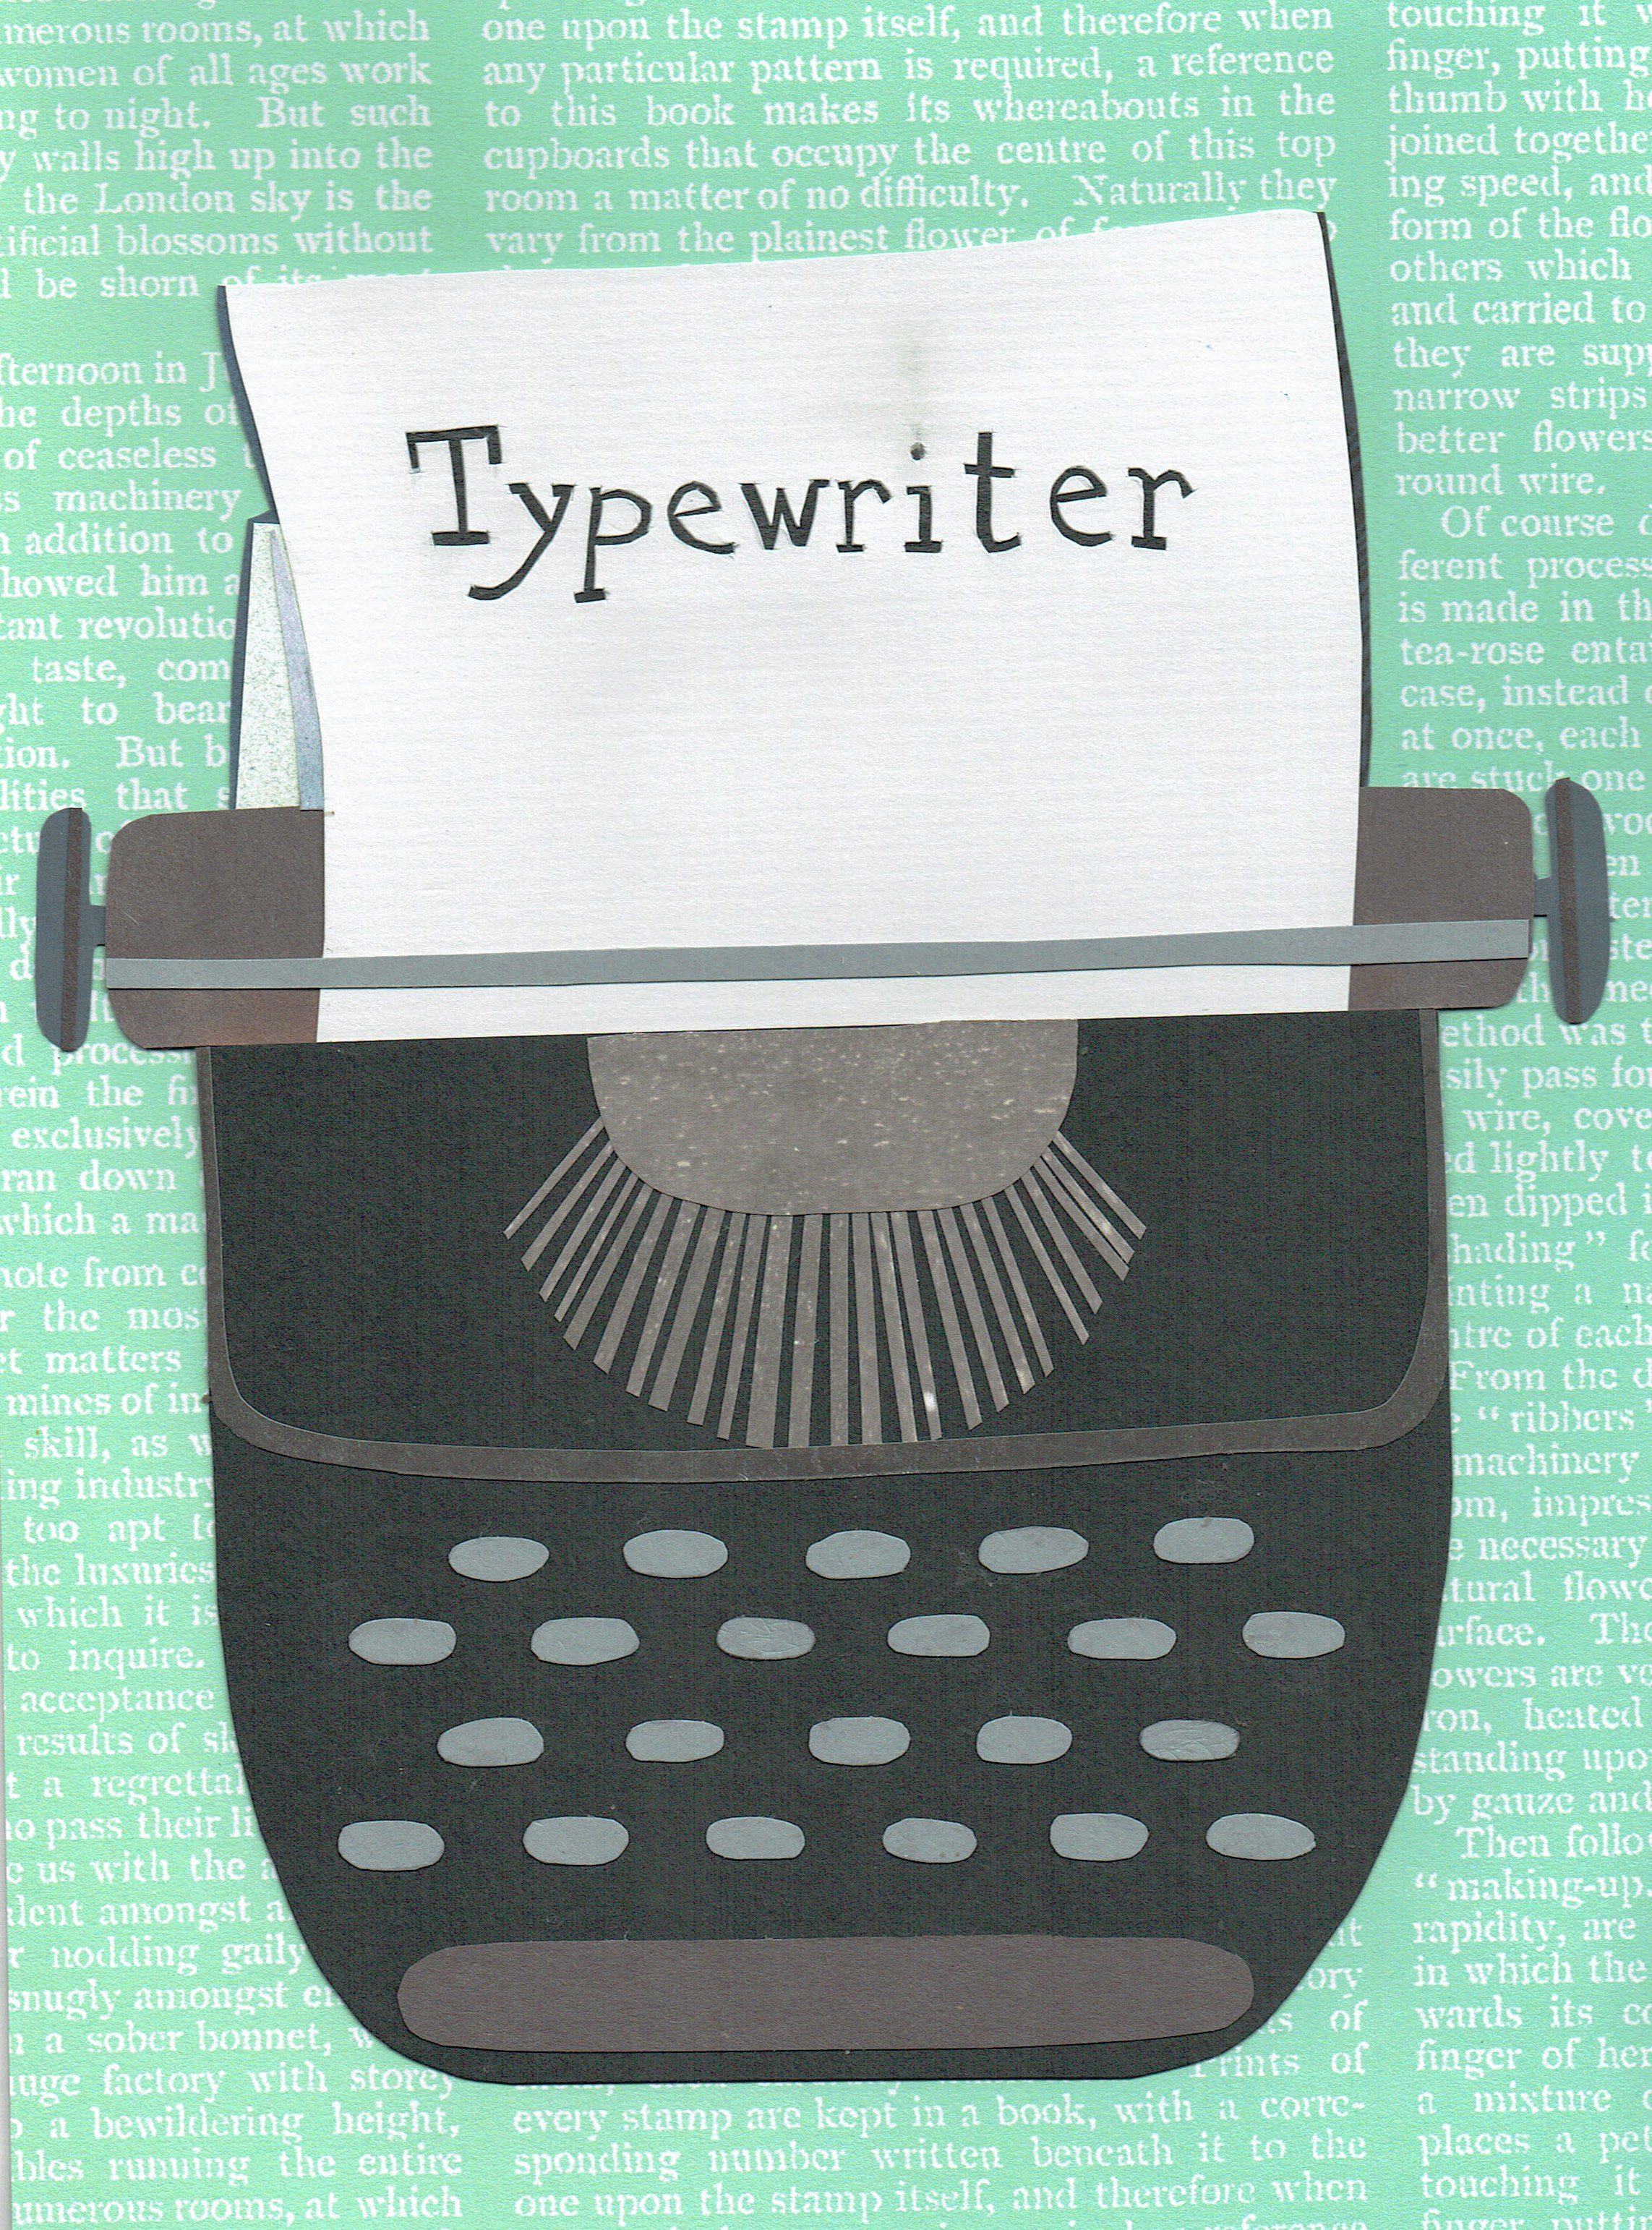 Day 80 - Typewriter